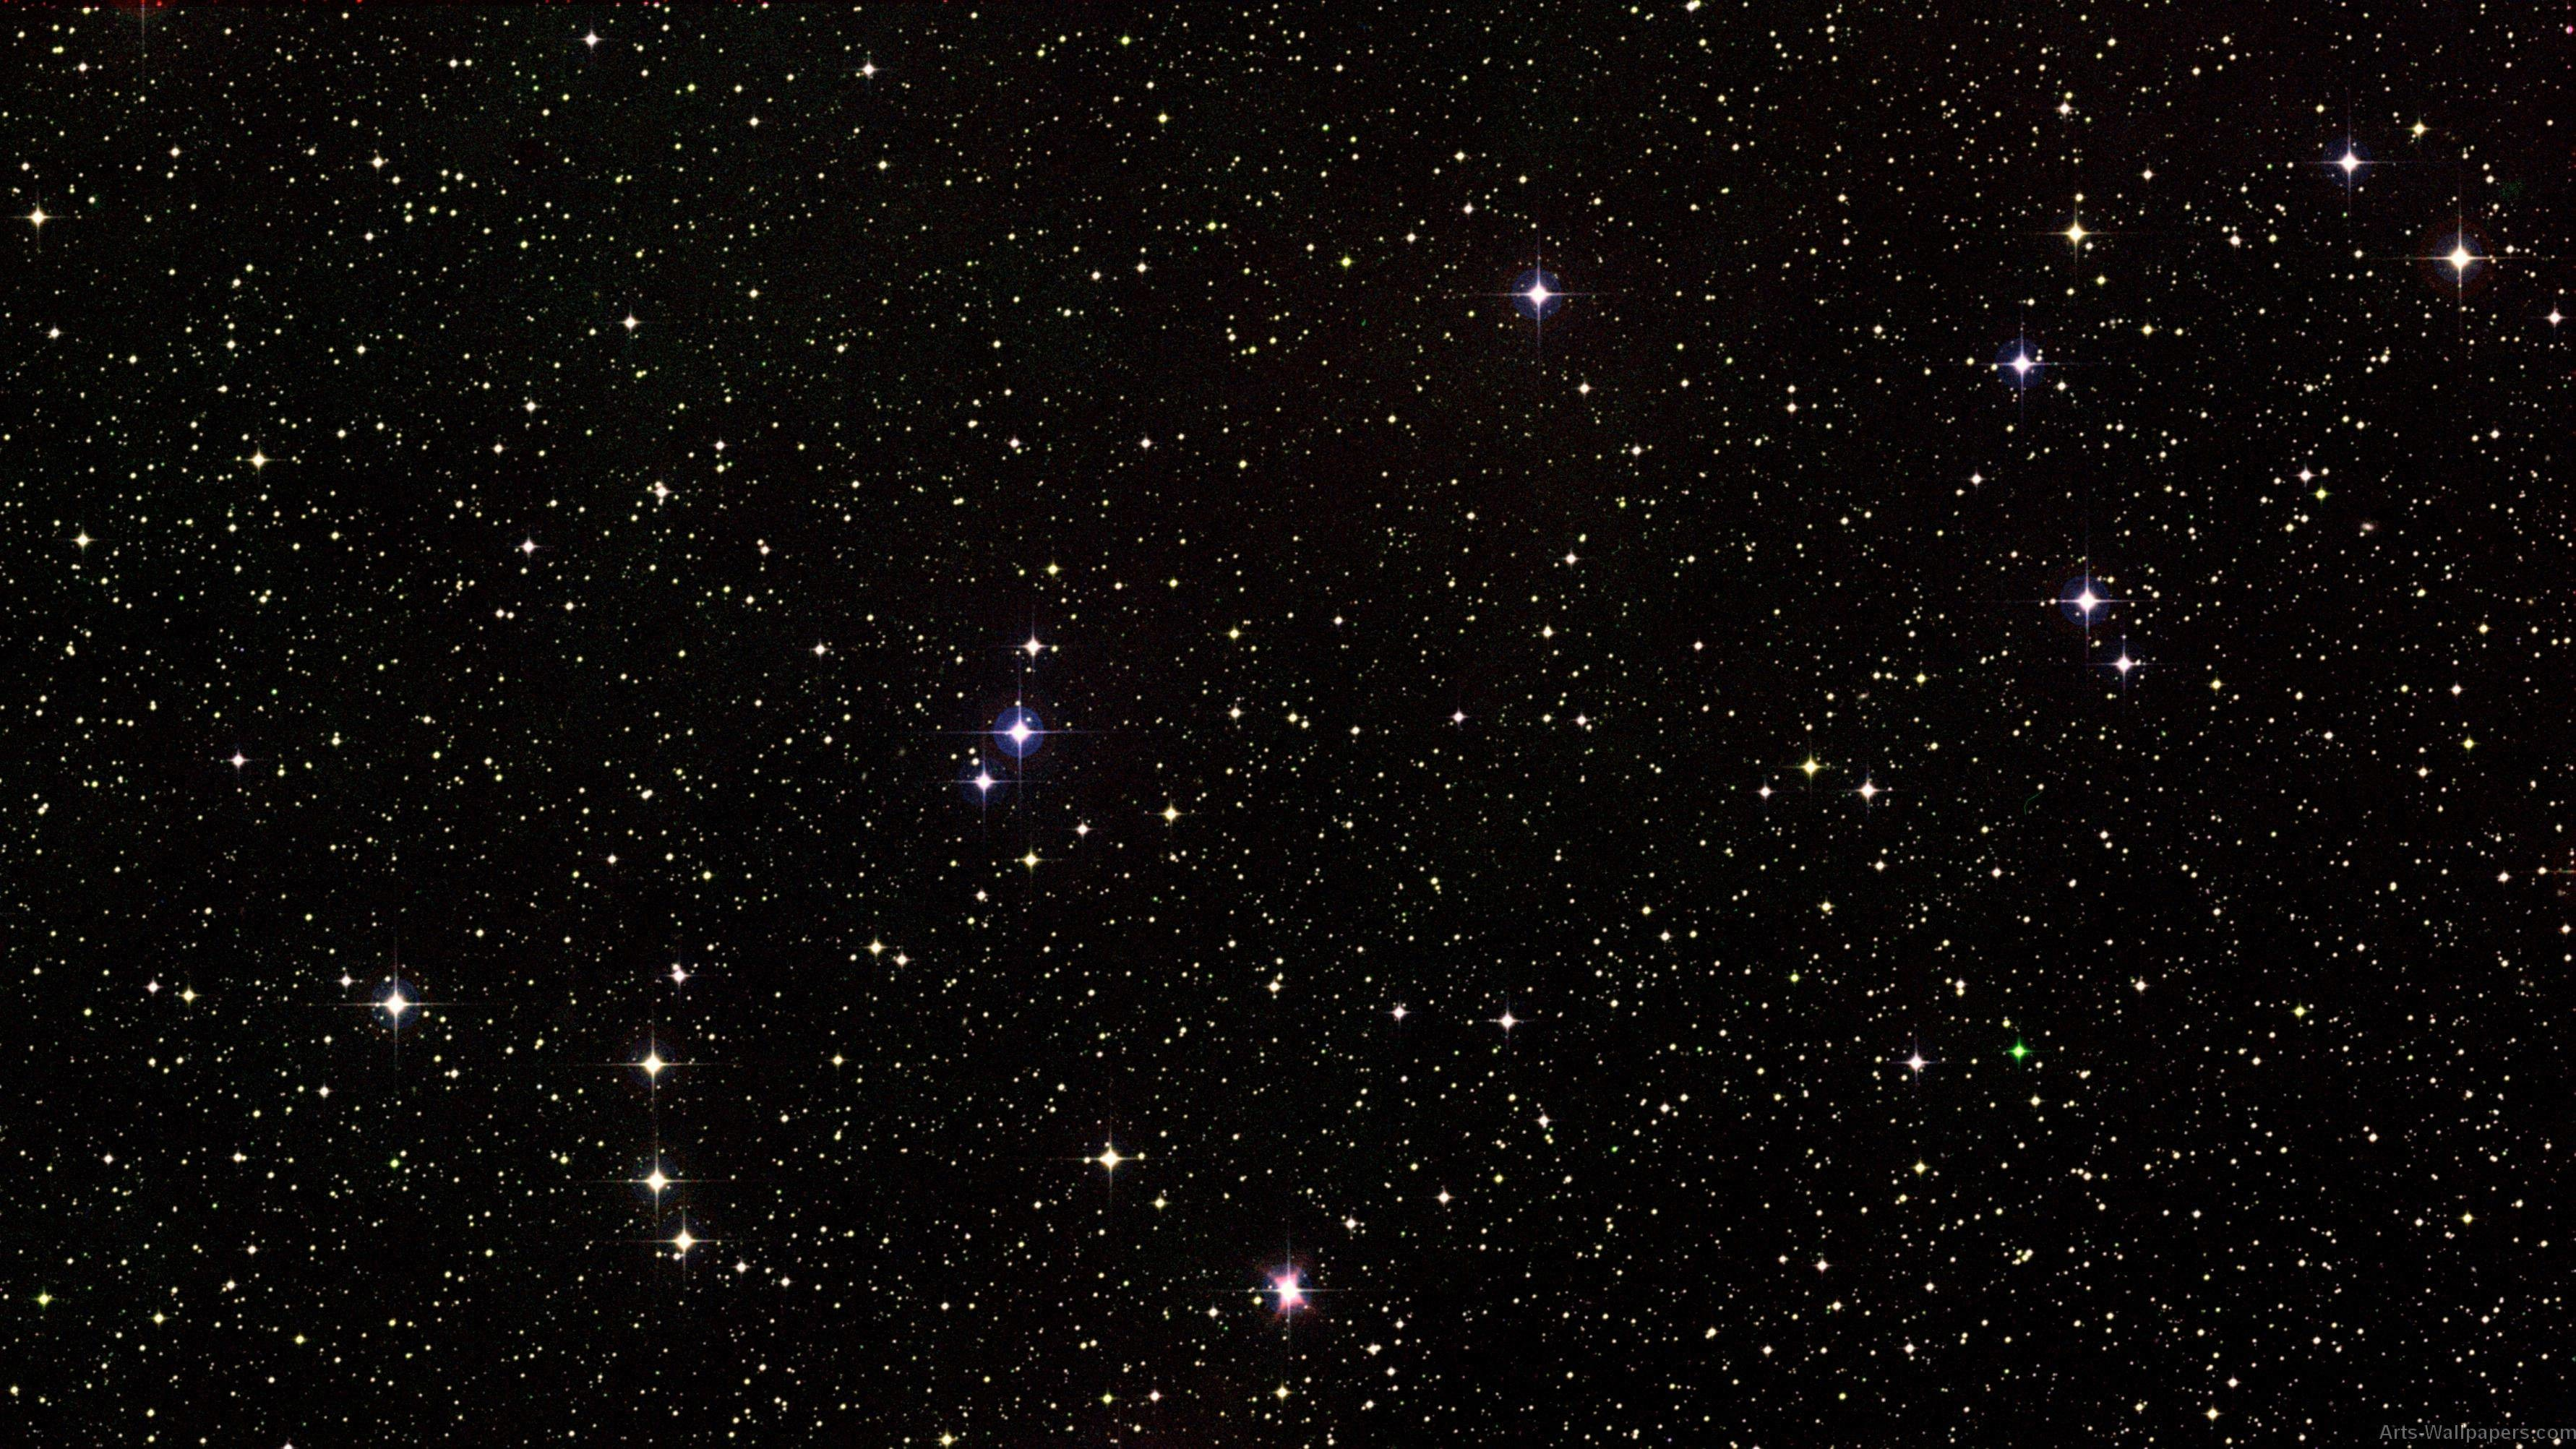 space stars wallpaper 74 images